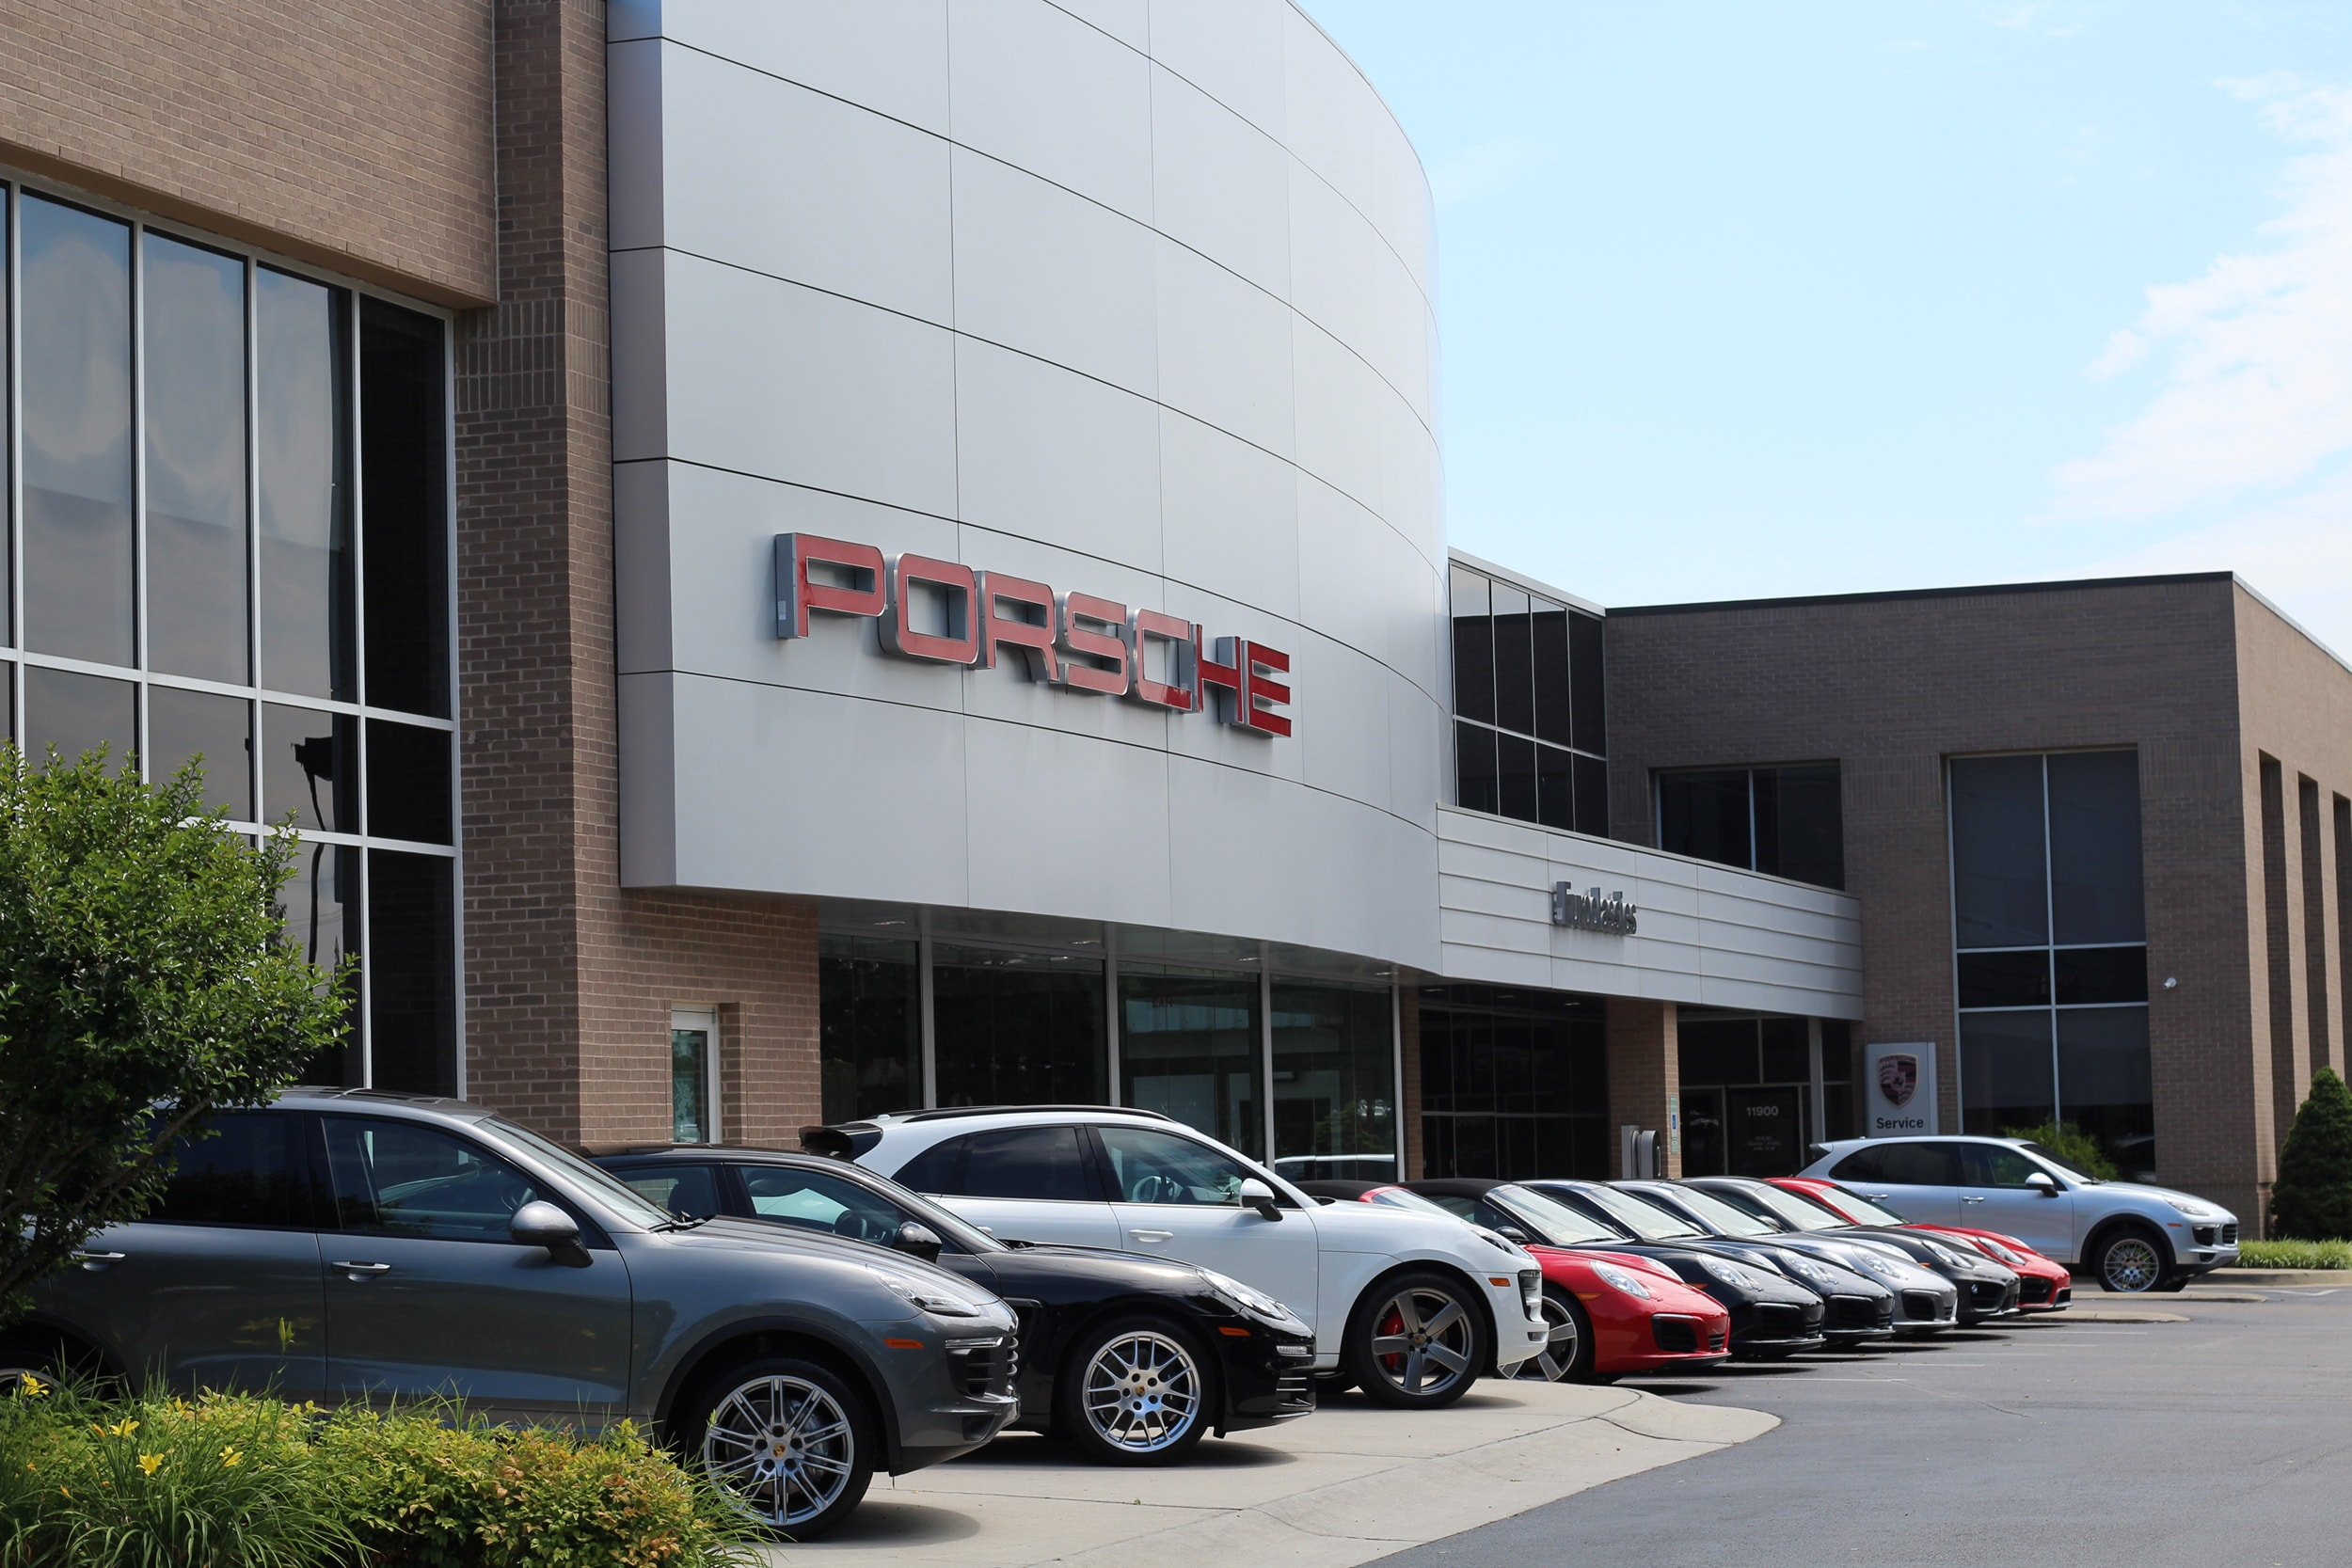 new porsche cars for sale in midlothian near richmond henrico new porsche cars for sale in midlothian